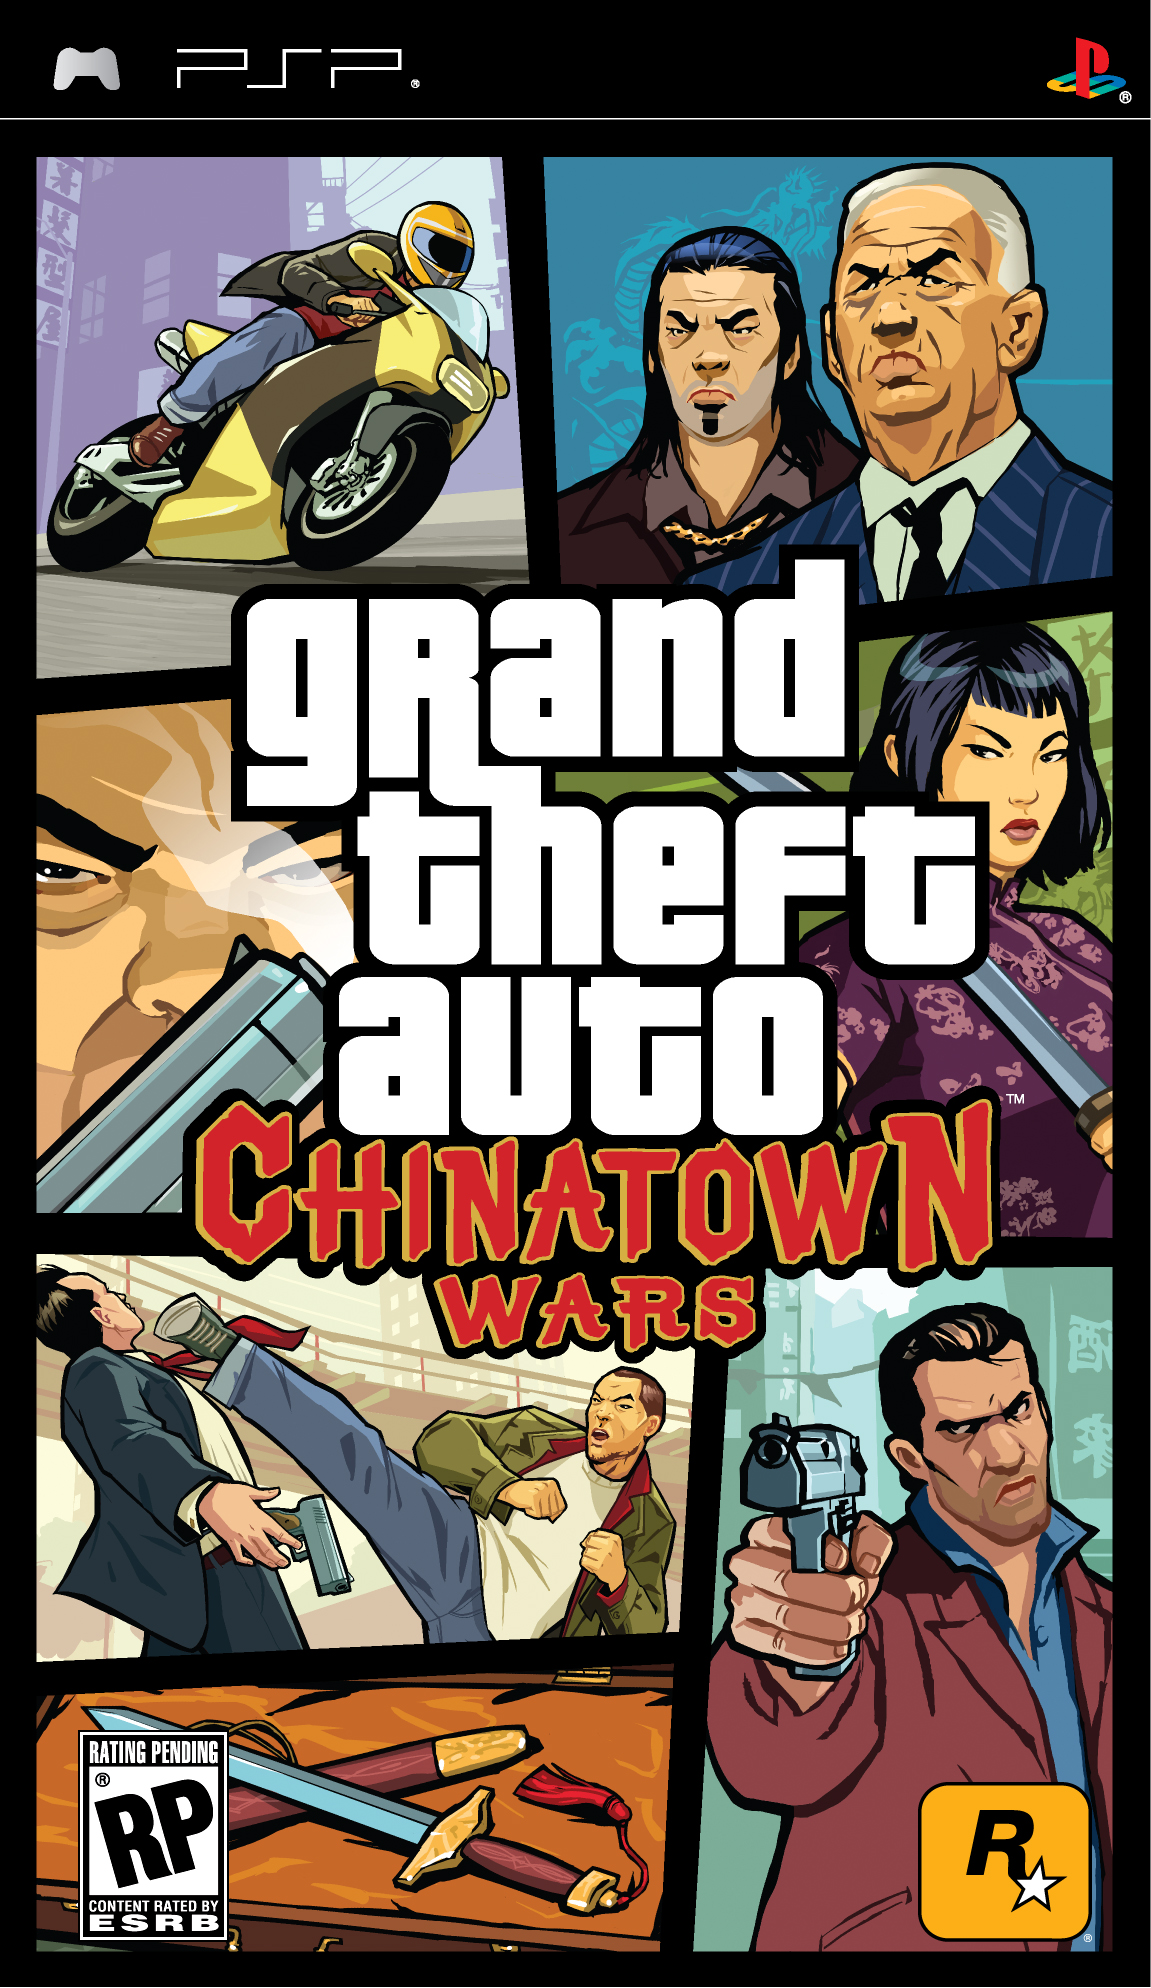 https://i2.wp.com/www.wired.com/images_blogs/gamelife/2009/06/chinatown_psp.jpg